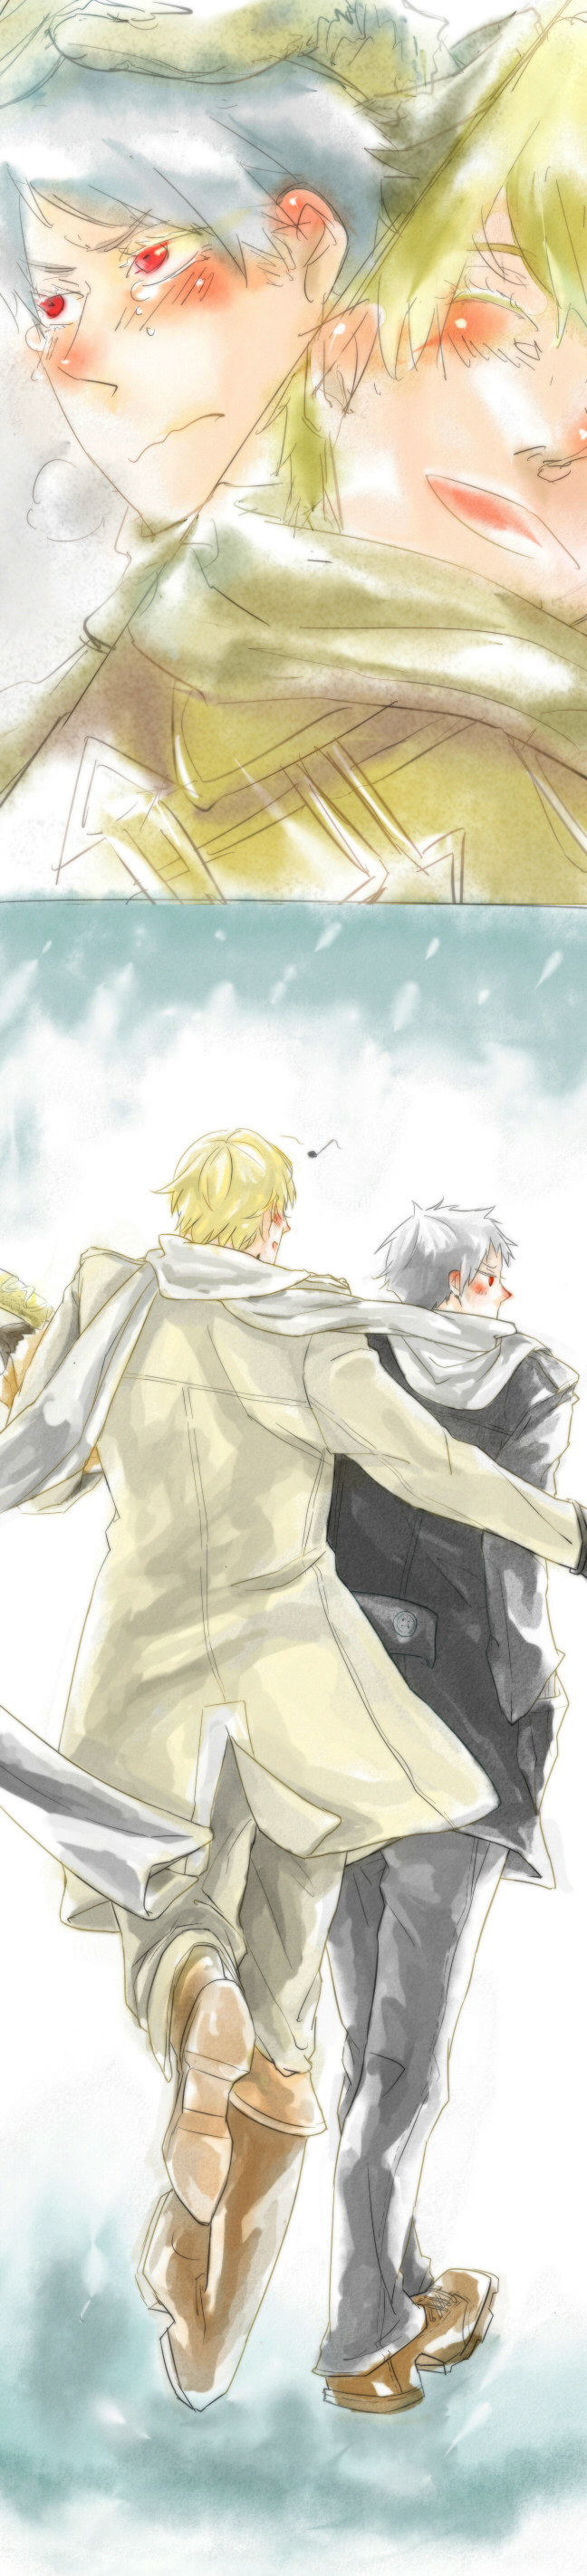 Tags: Anime, Axis Powers: Hetalia, Prussia, Russia, Artist Request